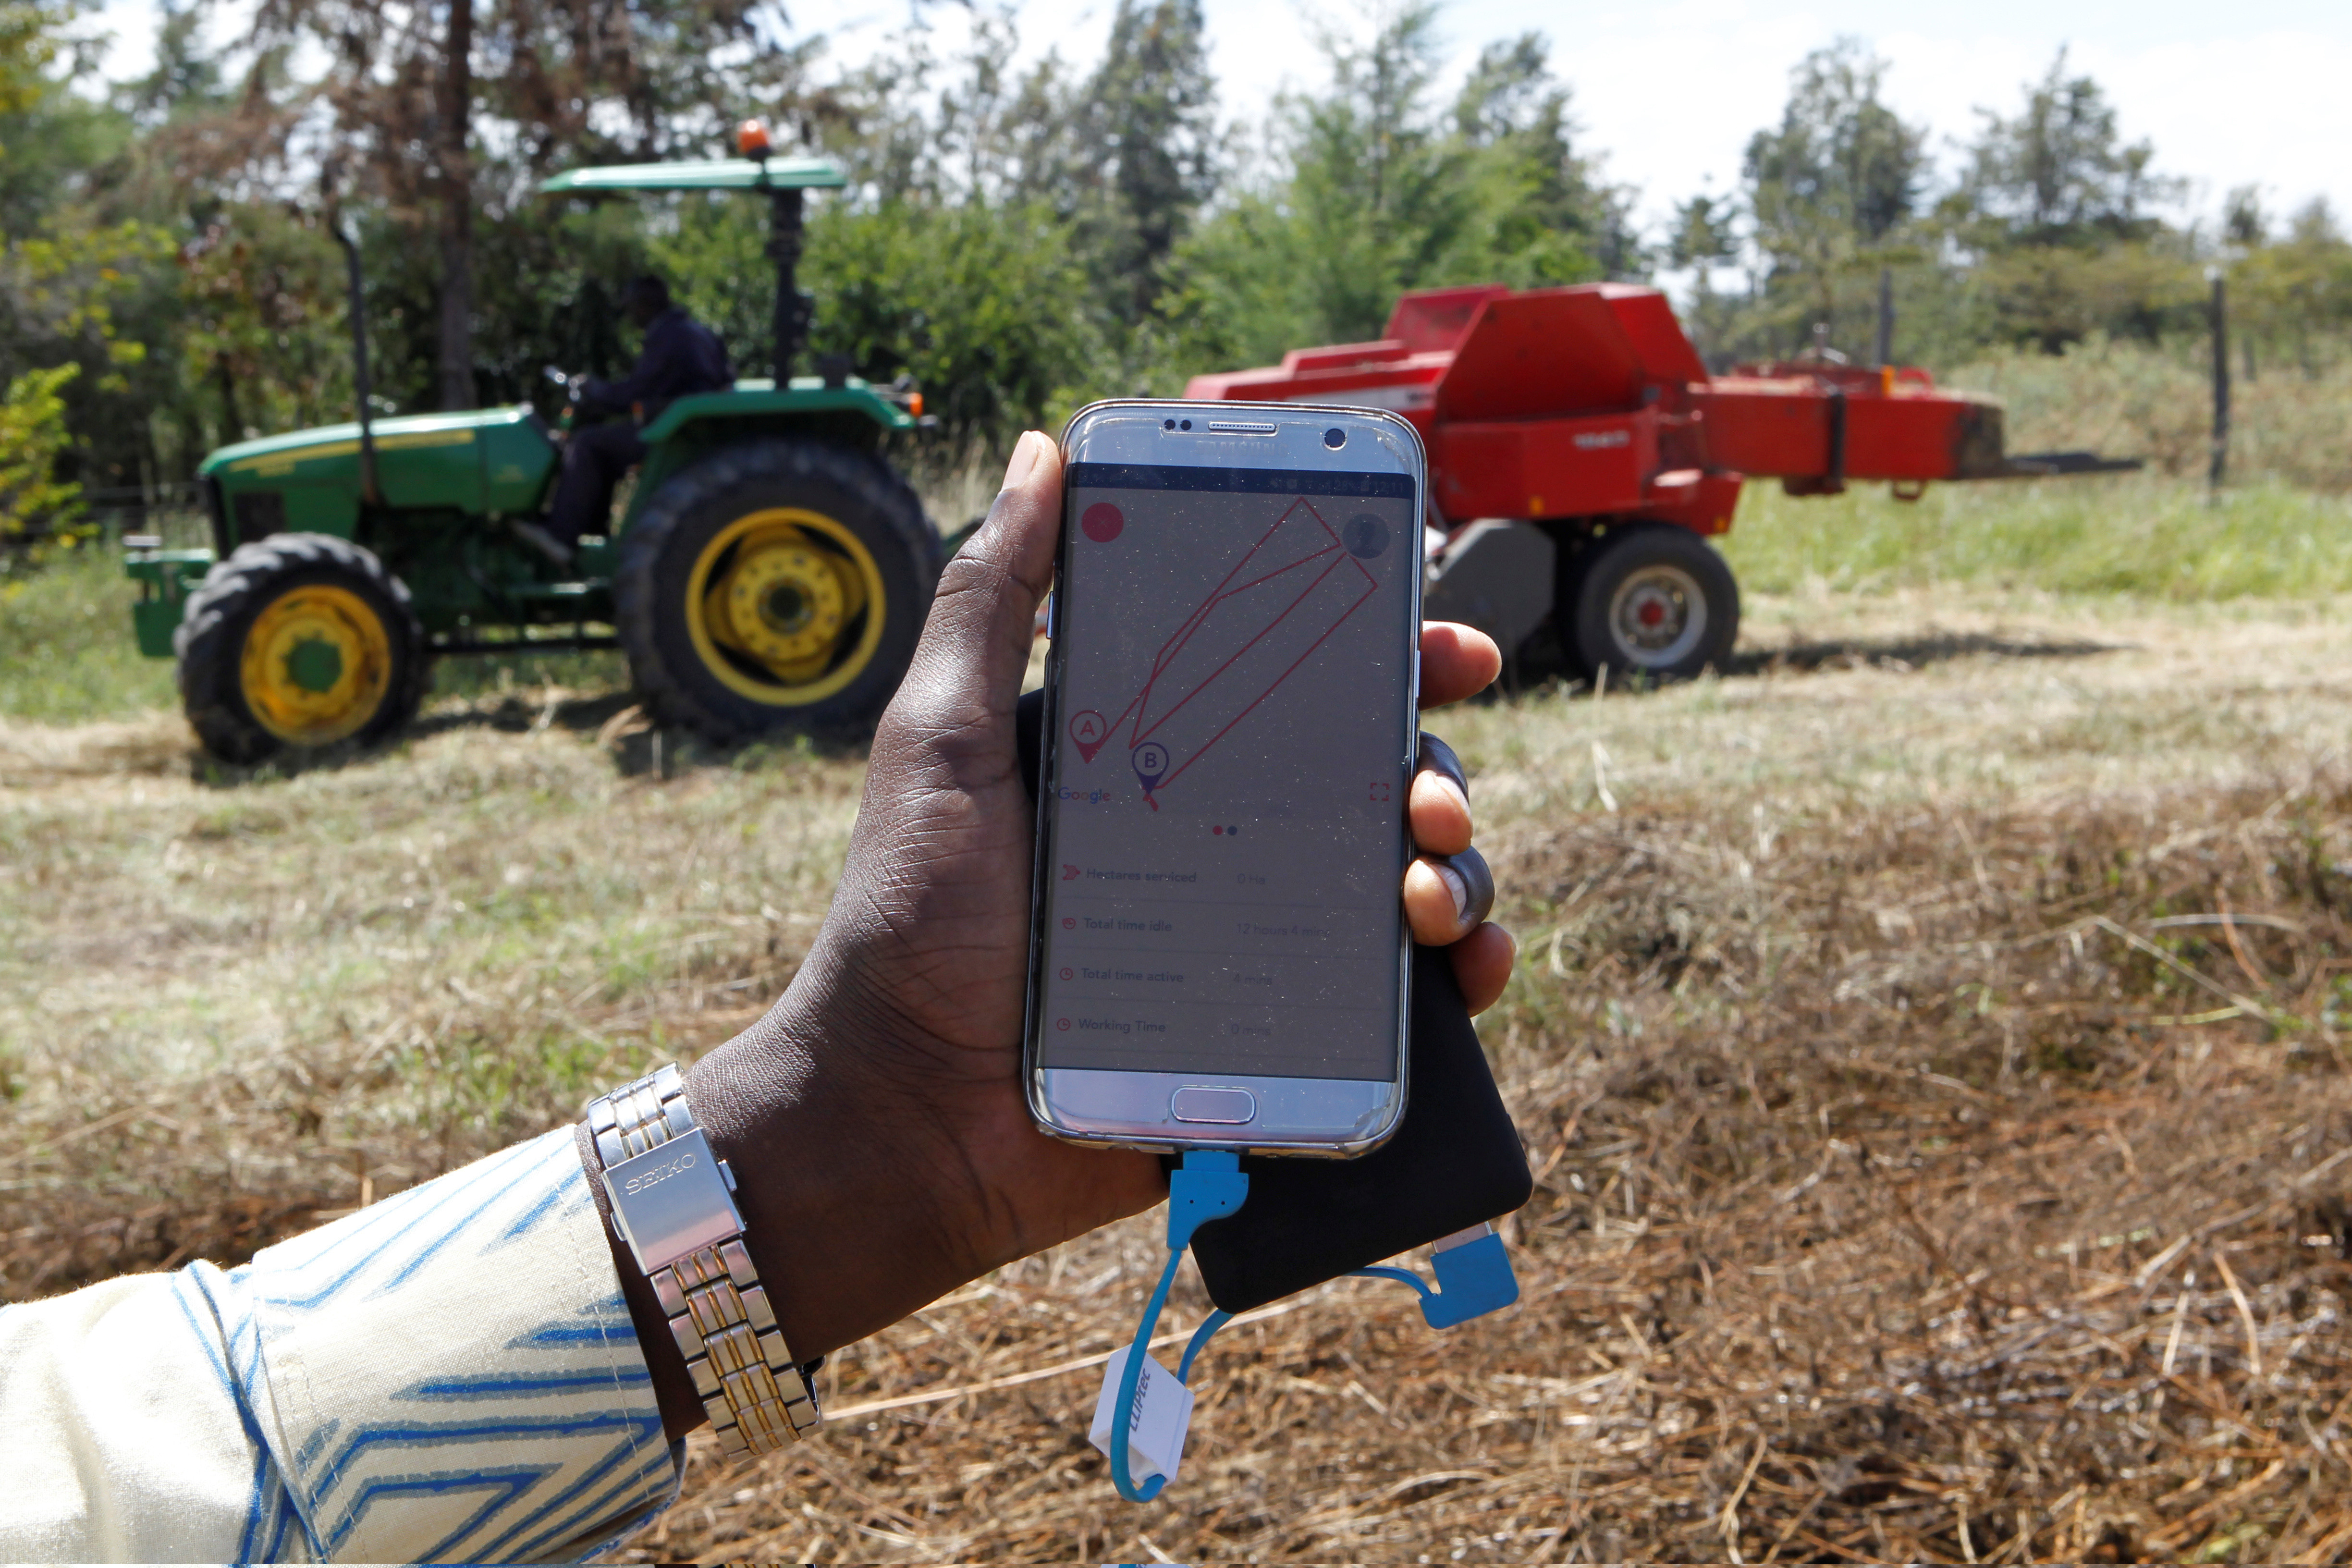 A mobile phone application shows movements of a John Deere 5503 tractor, installed with the Hello Tractor technology that connects farmers with vehicles' owners, in Umande village in Nanyuki, Kenya February 4, 2020. Picture taken February 4, 2020. REUTERS/Njeri Mwangi - RC2F7F9WHWYX